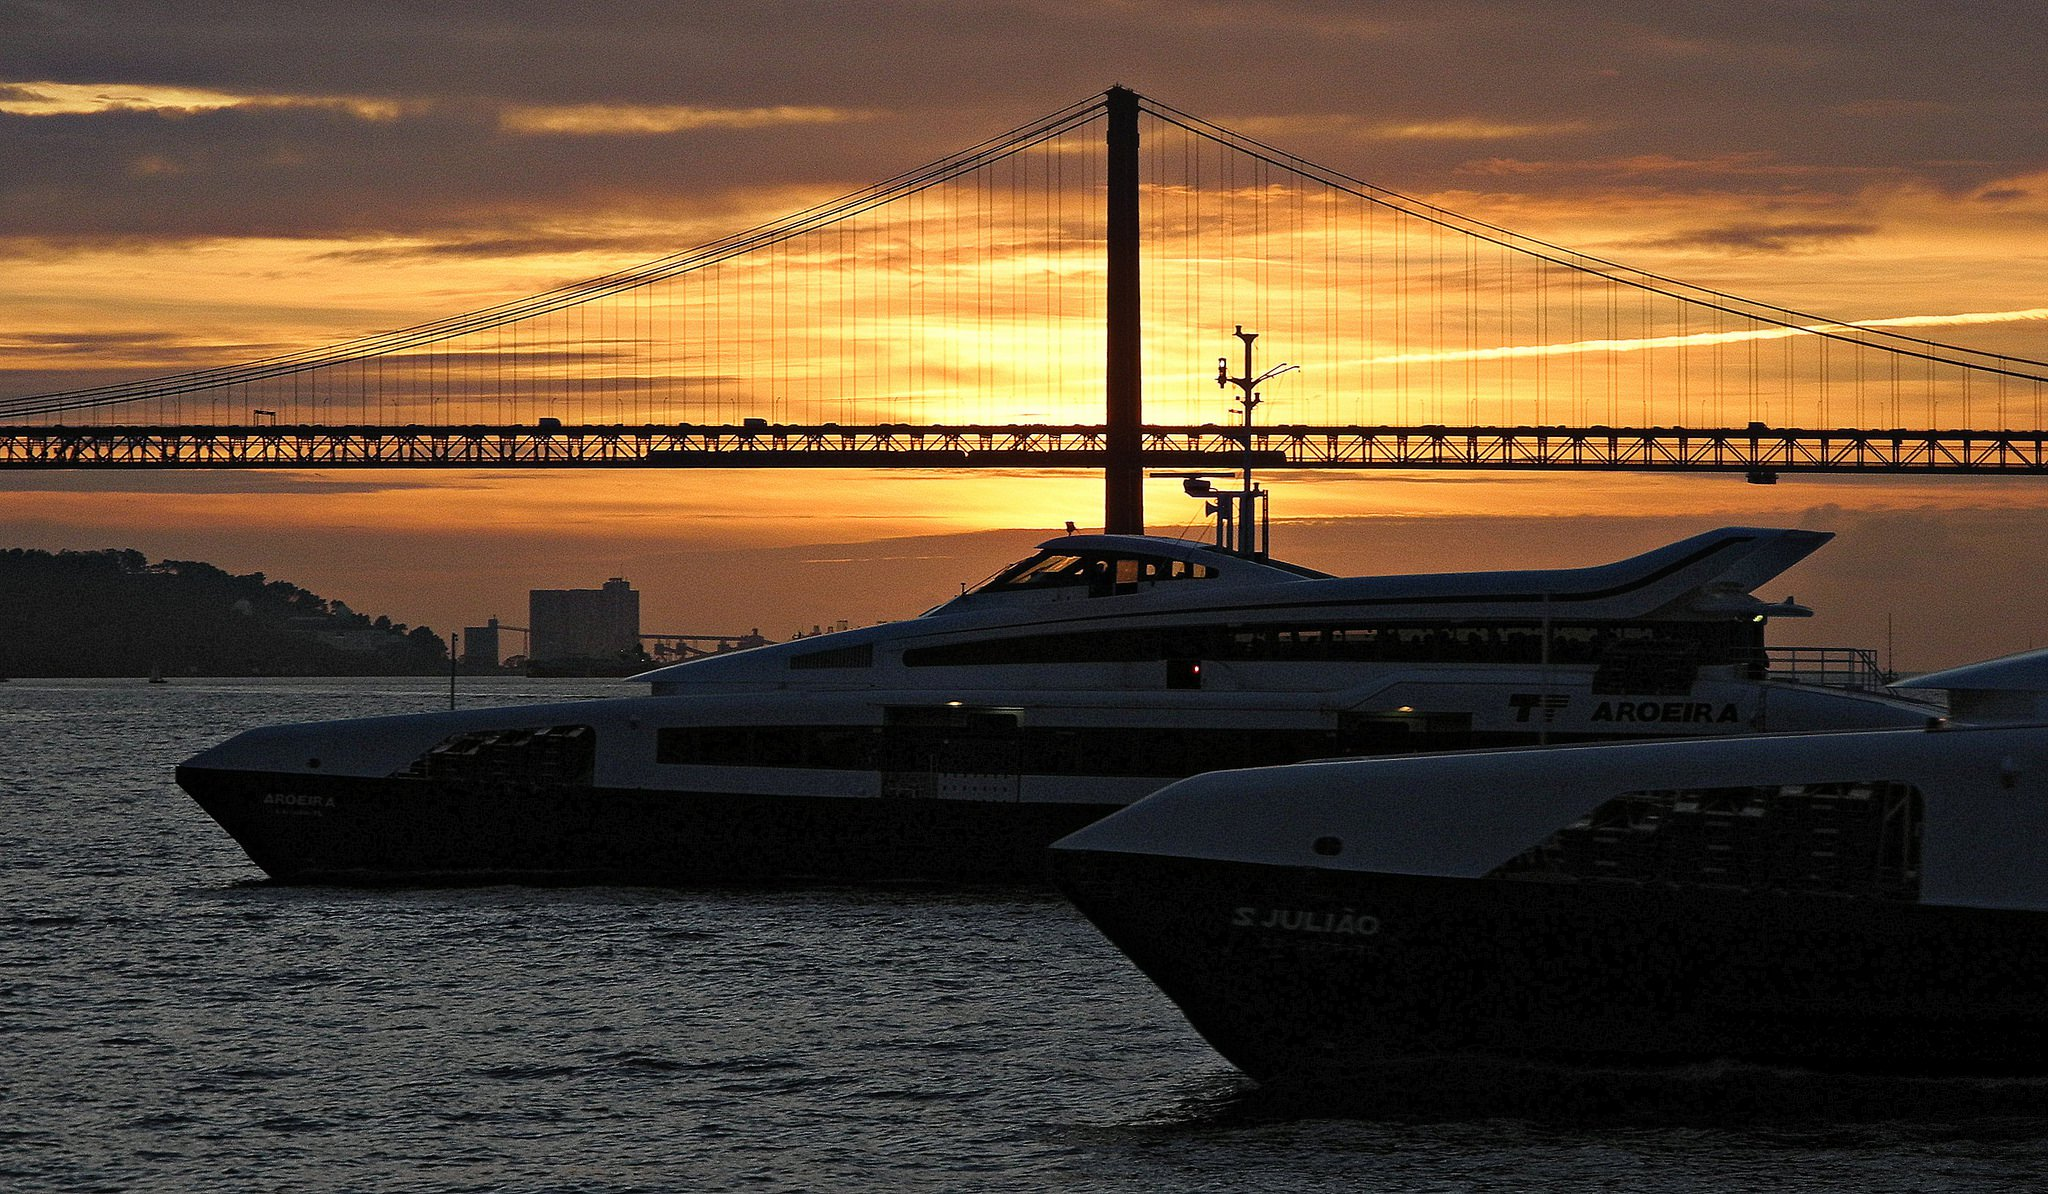 Lisbon boats and ferries at sunset